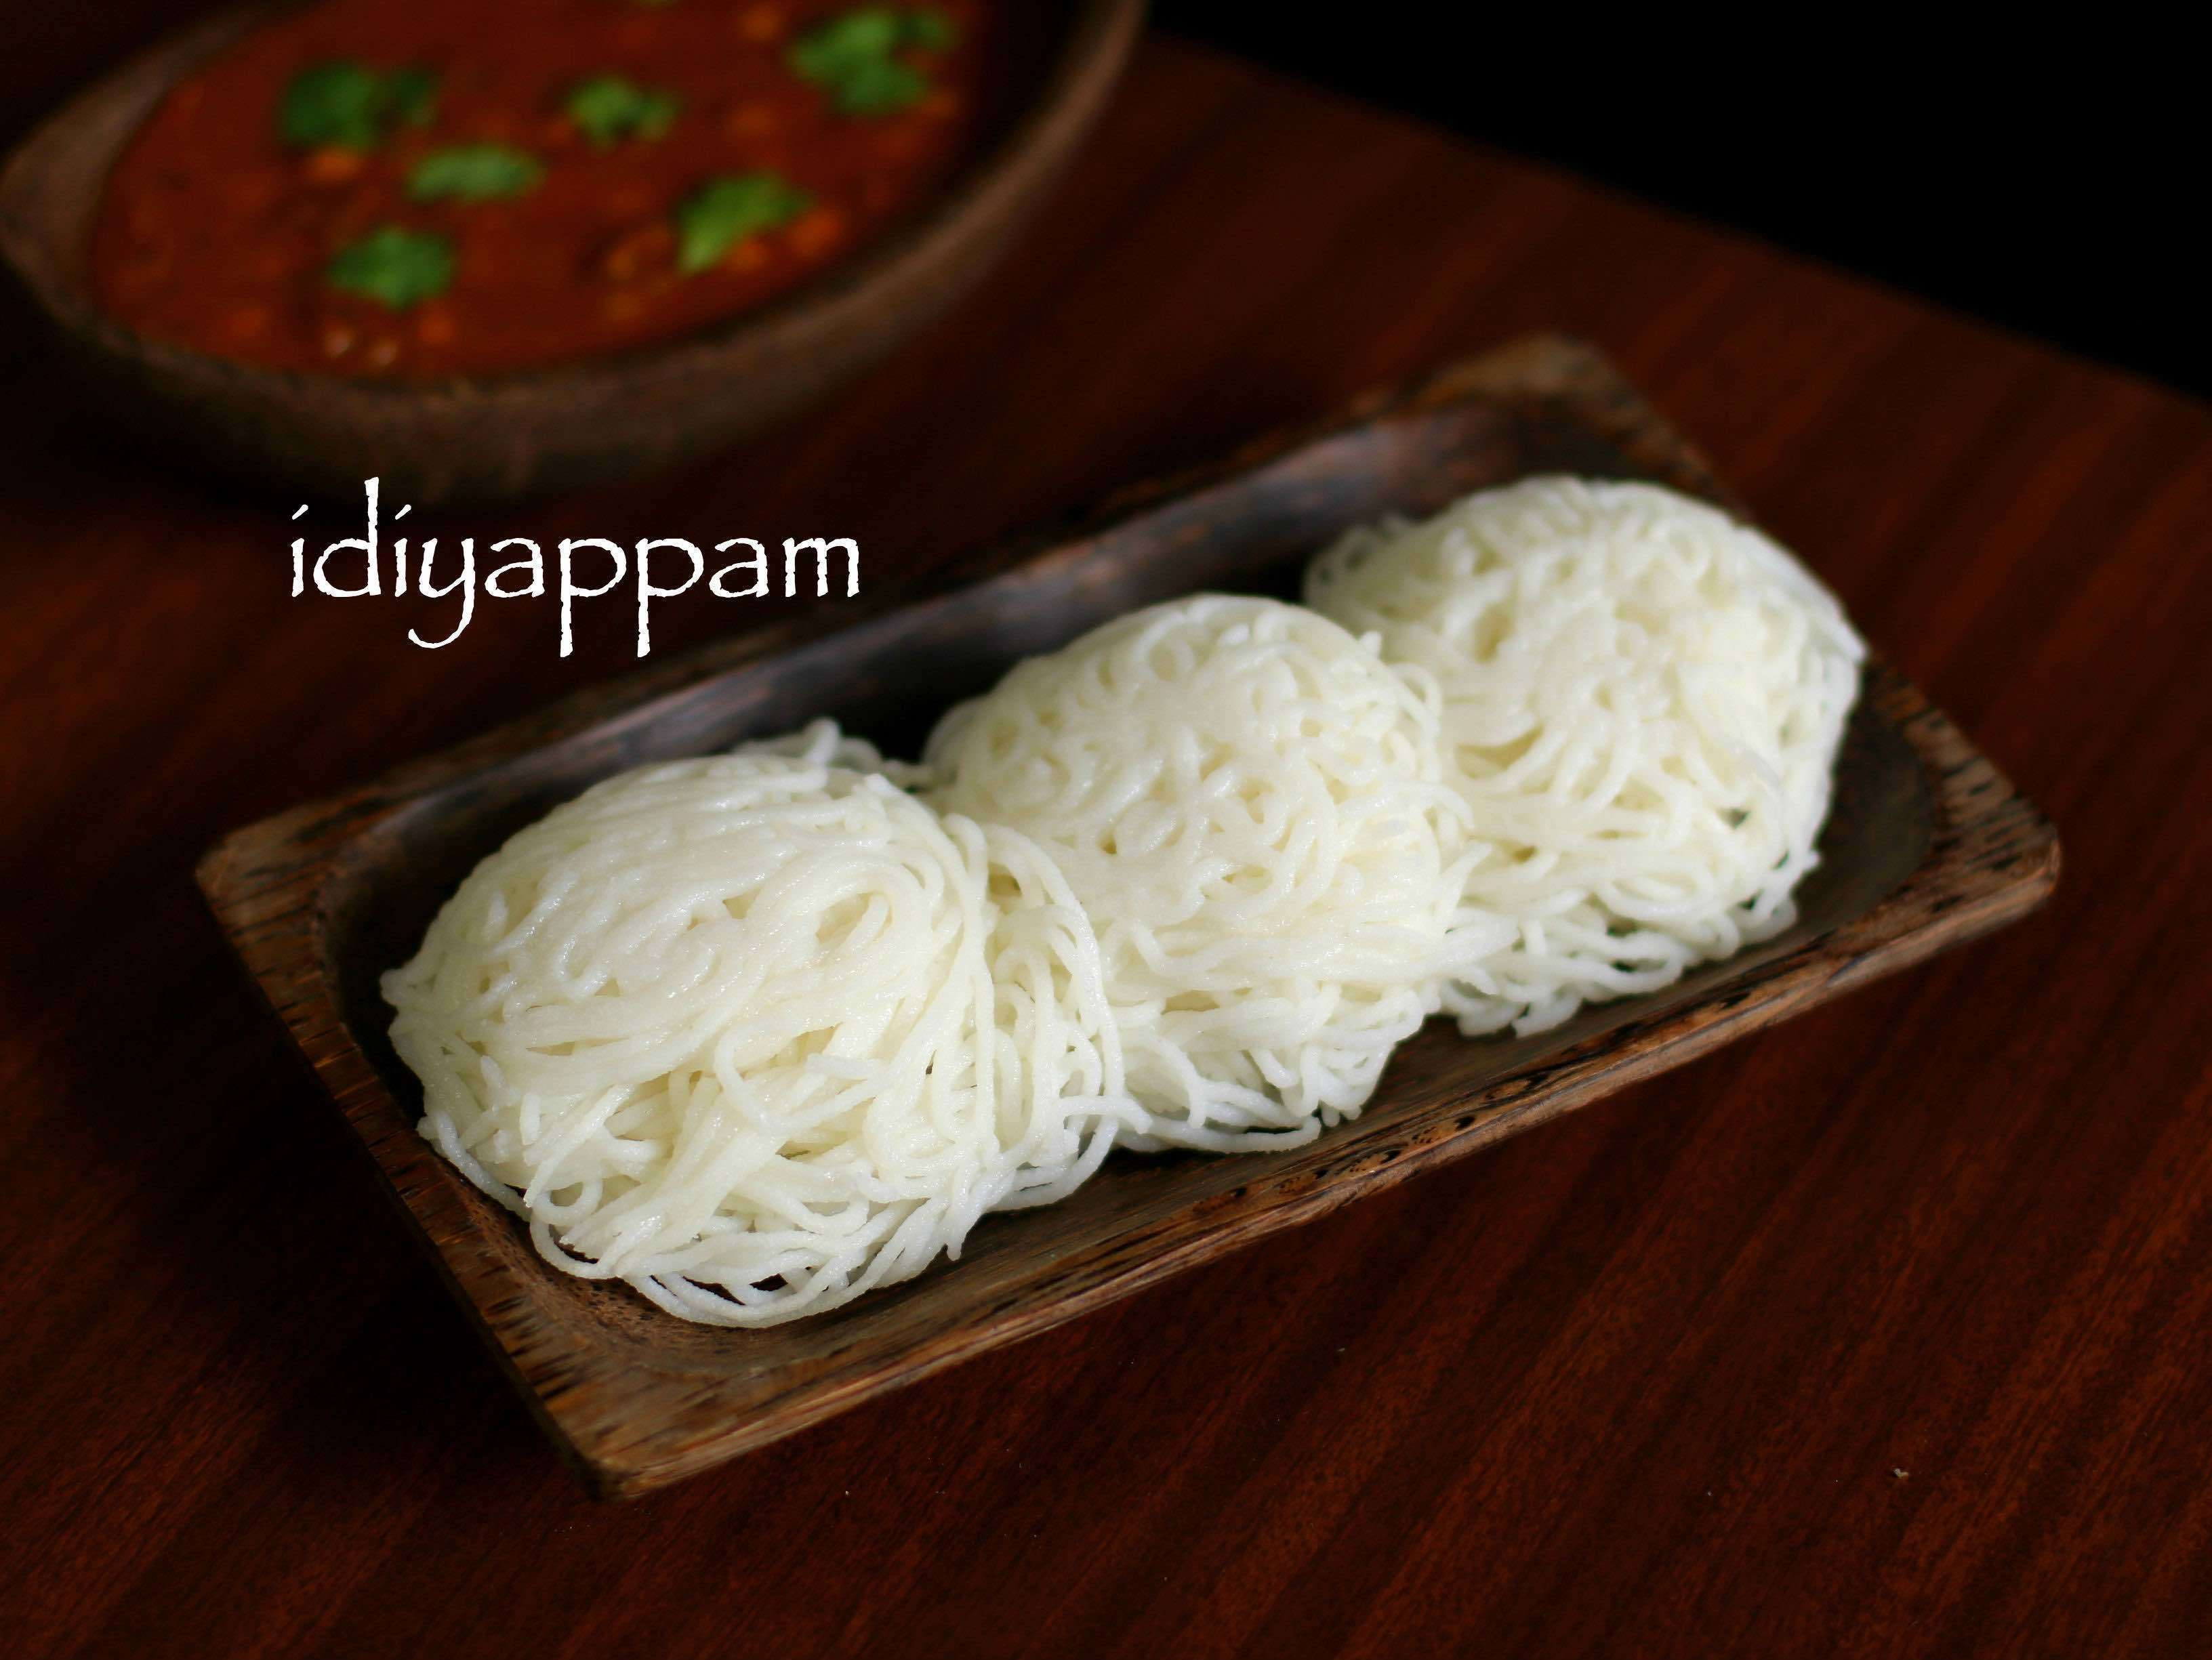 idiyappam recipe | nool puttu | kerala style idiyappam with rice flour